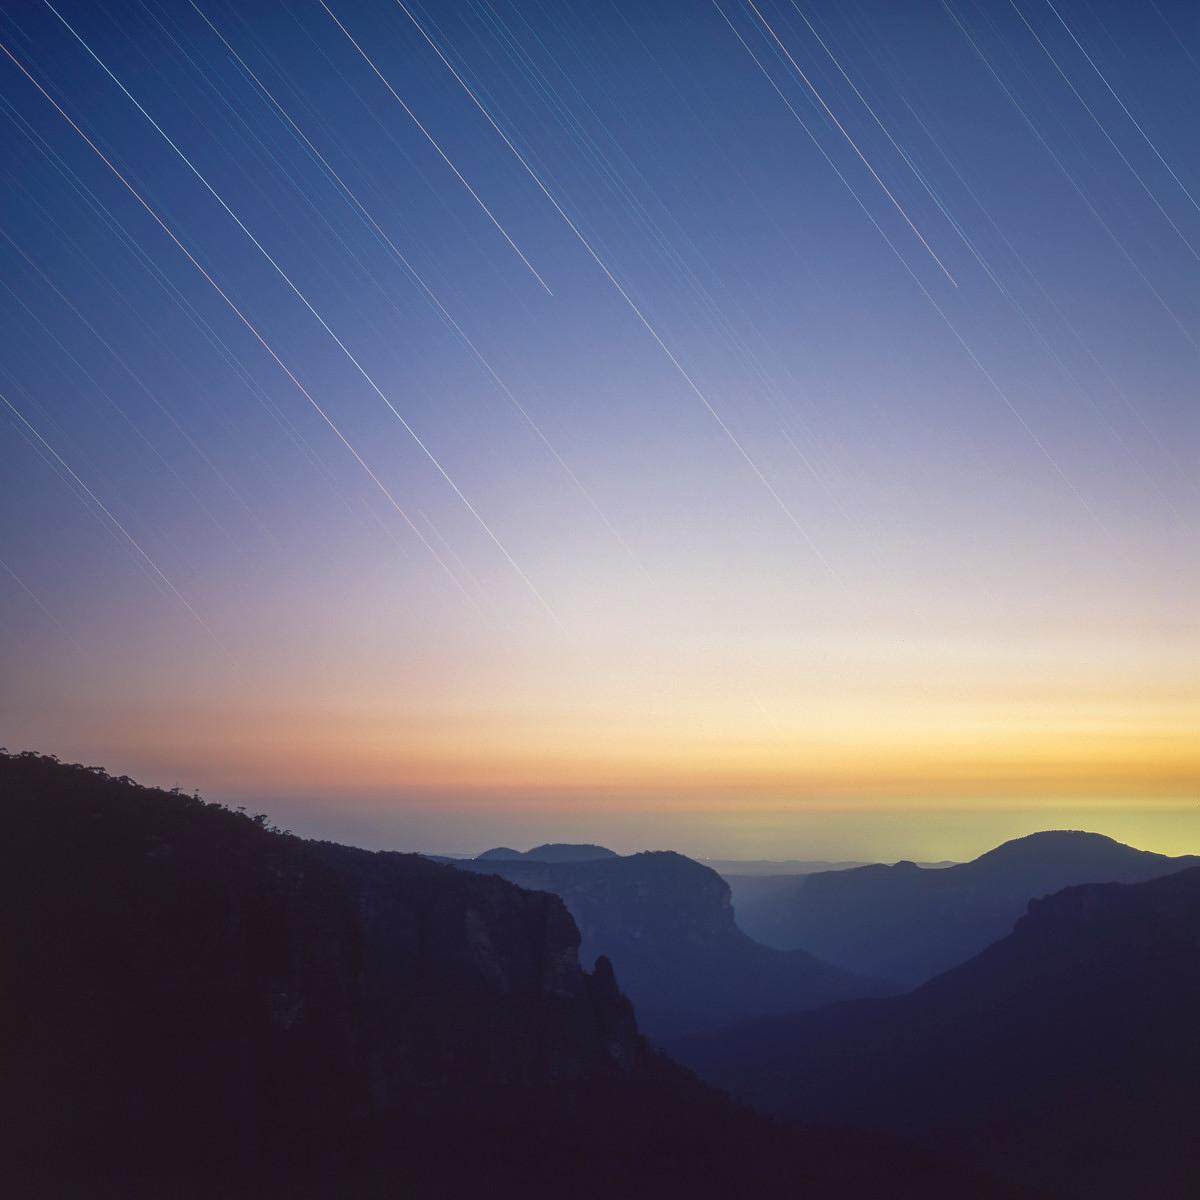 Star Trails over Blue Mountains